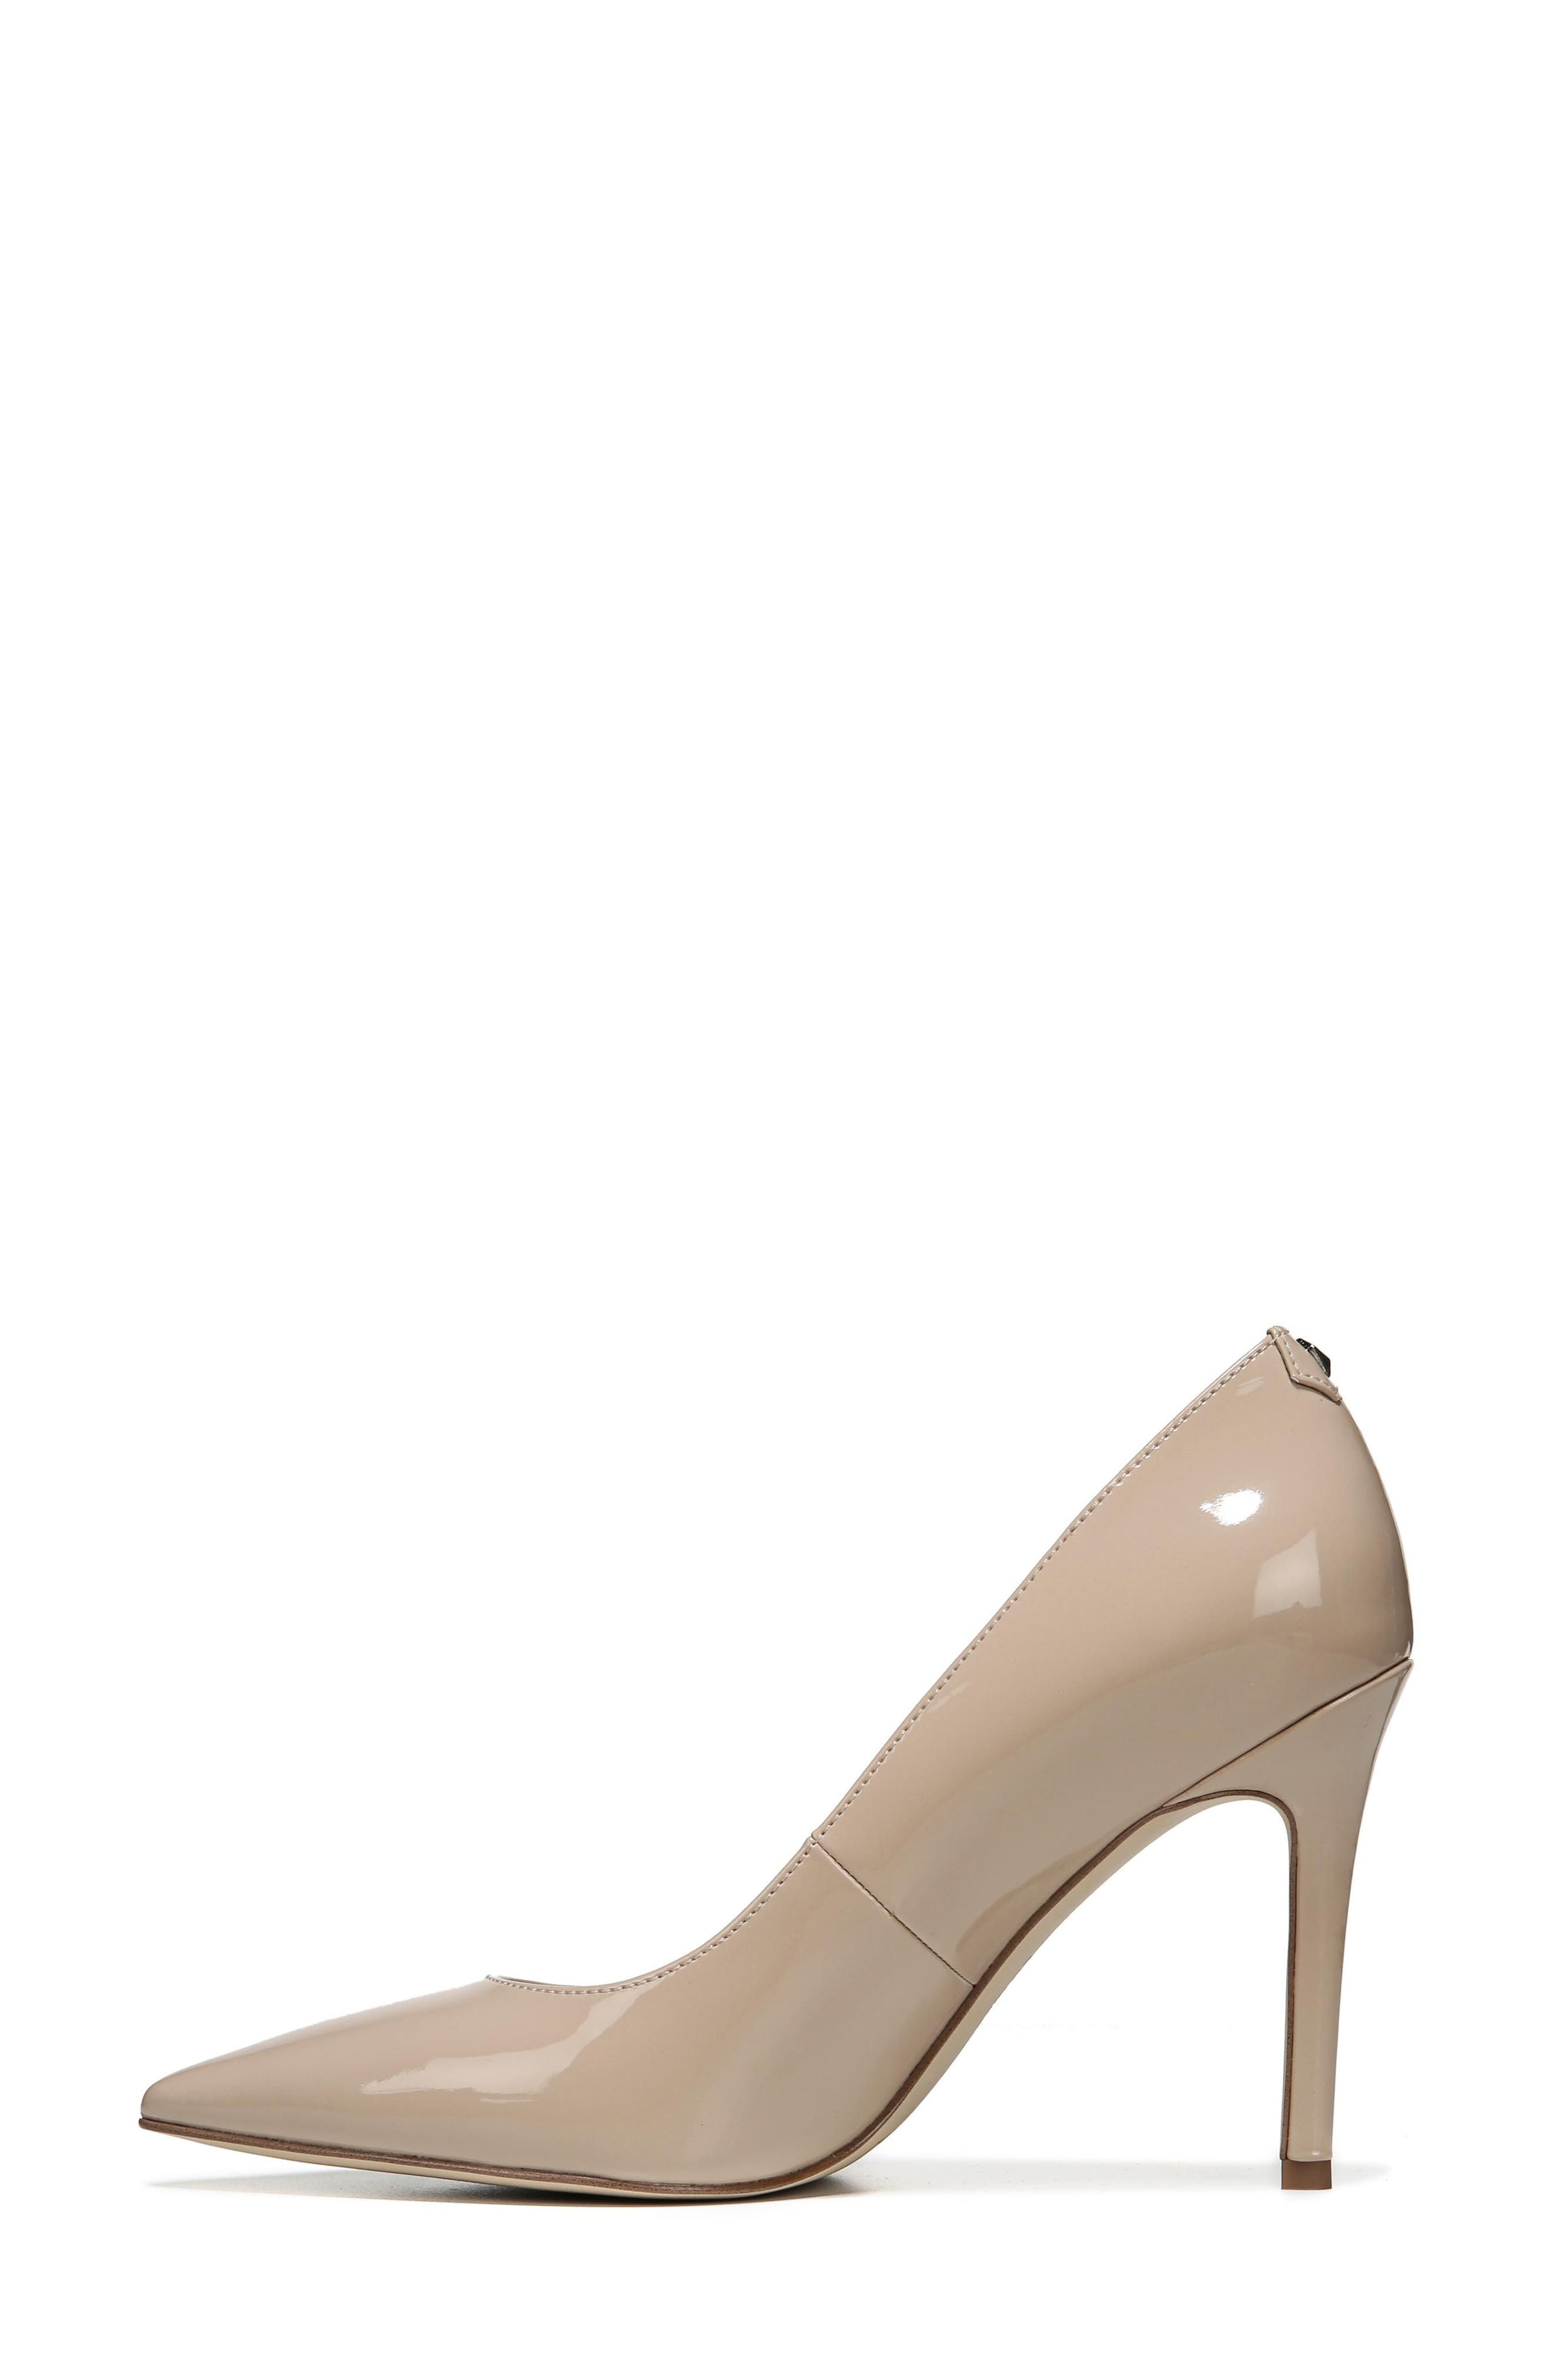 SAM EDELMAN, Hazel Pointy Toe Pump, Alternate thumbnail 2, color, NUDE LINEN PATENT LEATHER